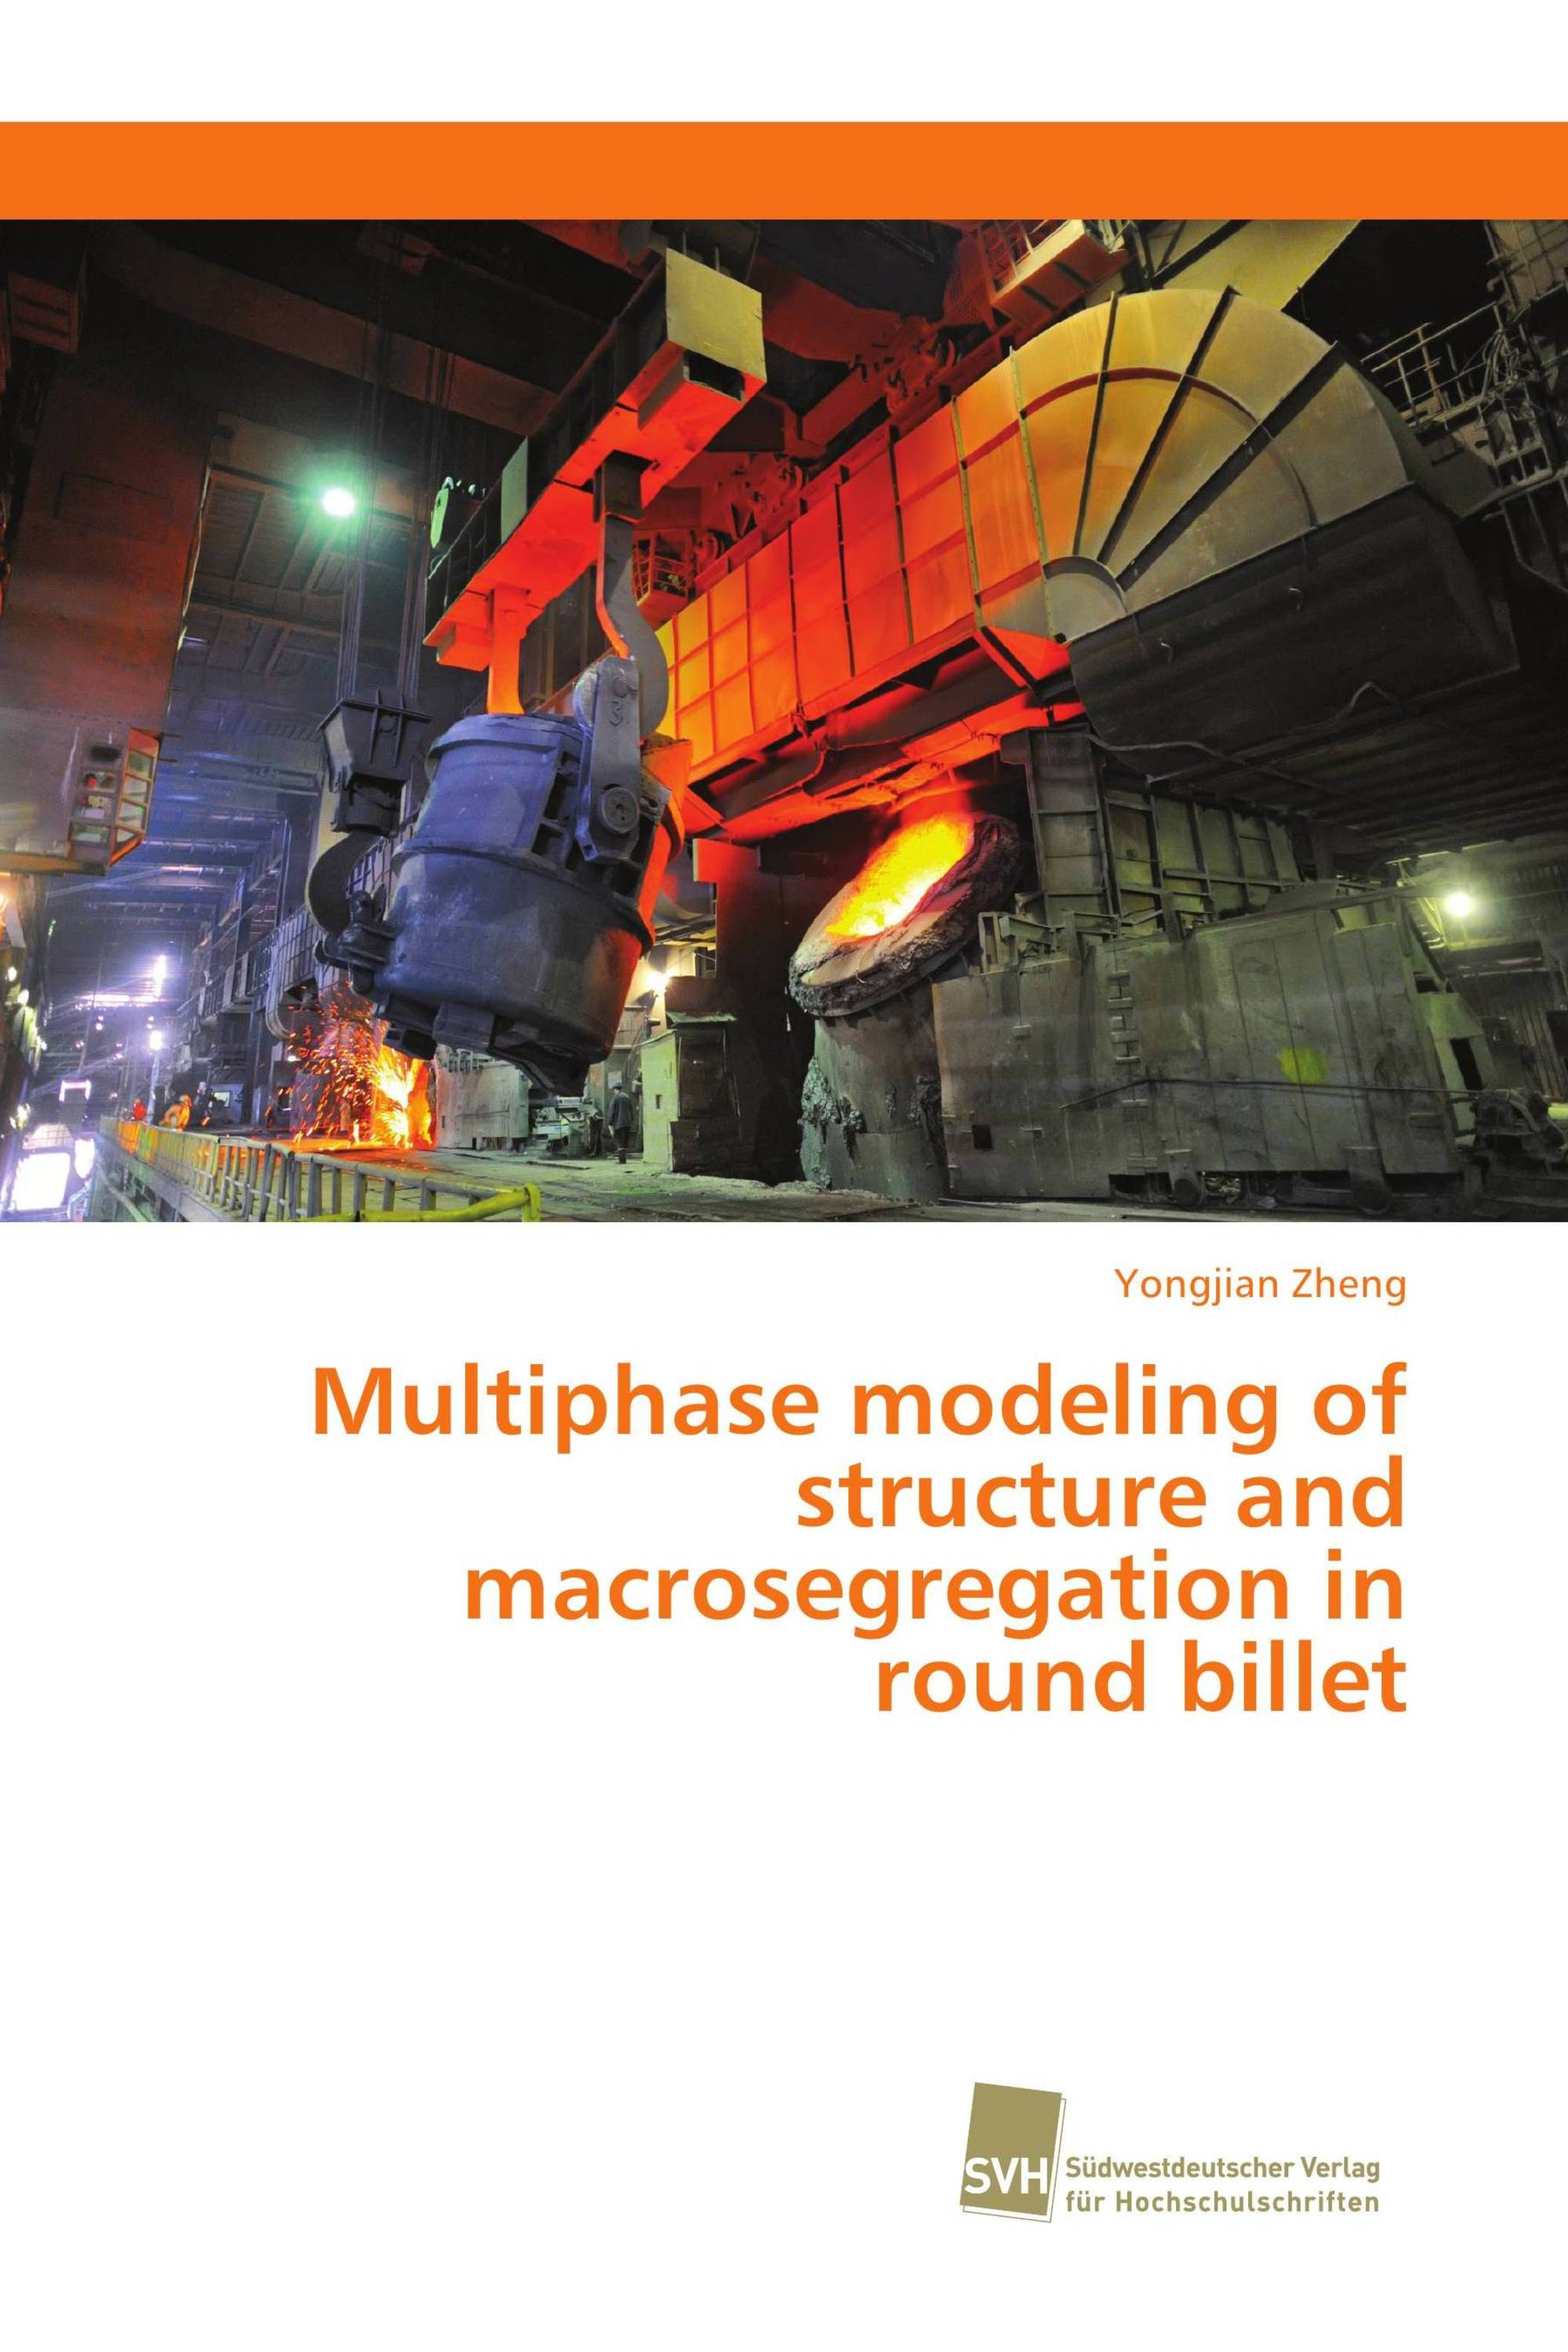 Multiphase modeling of structure and macrosegregation in round billet